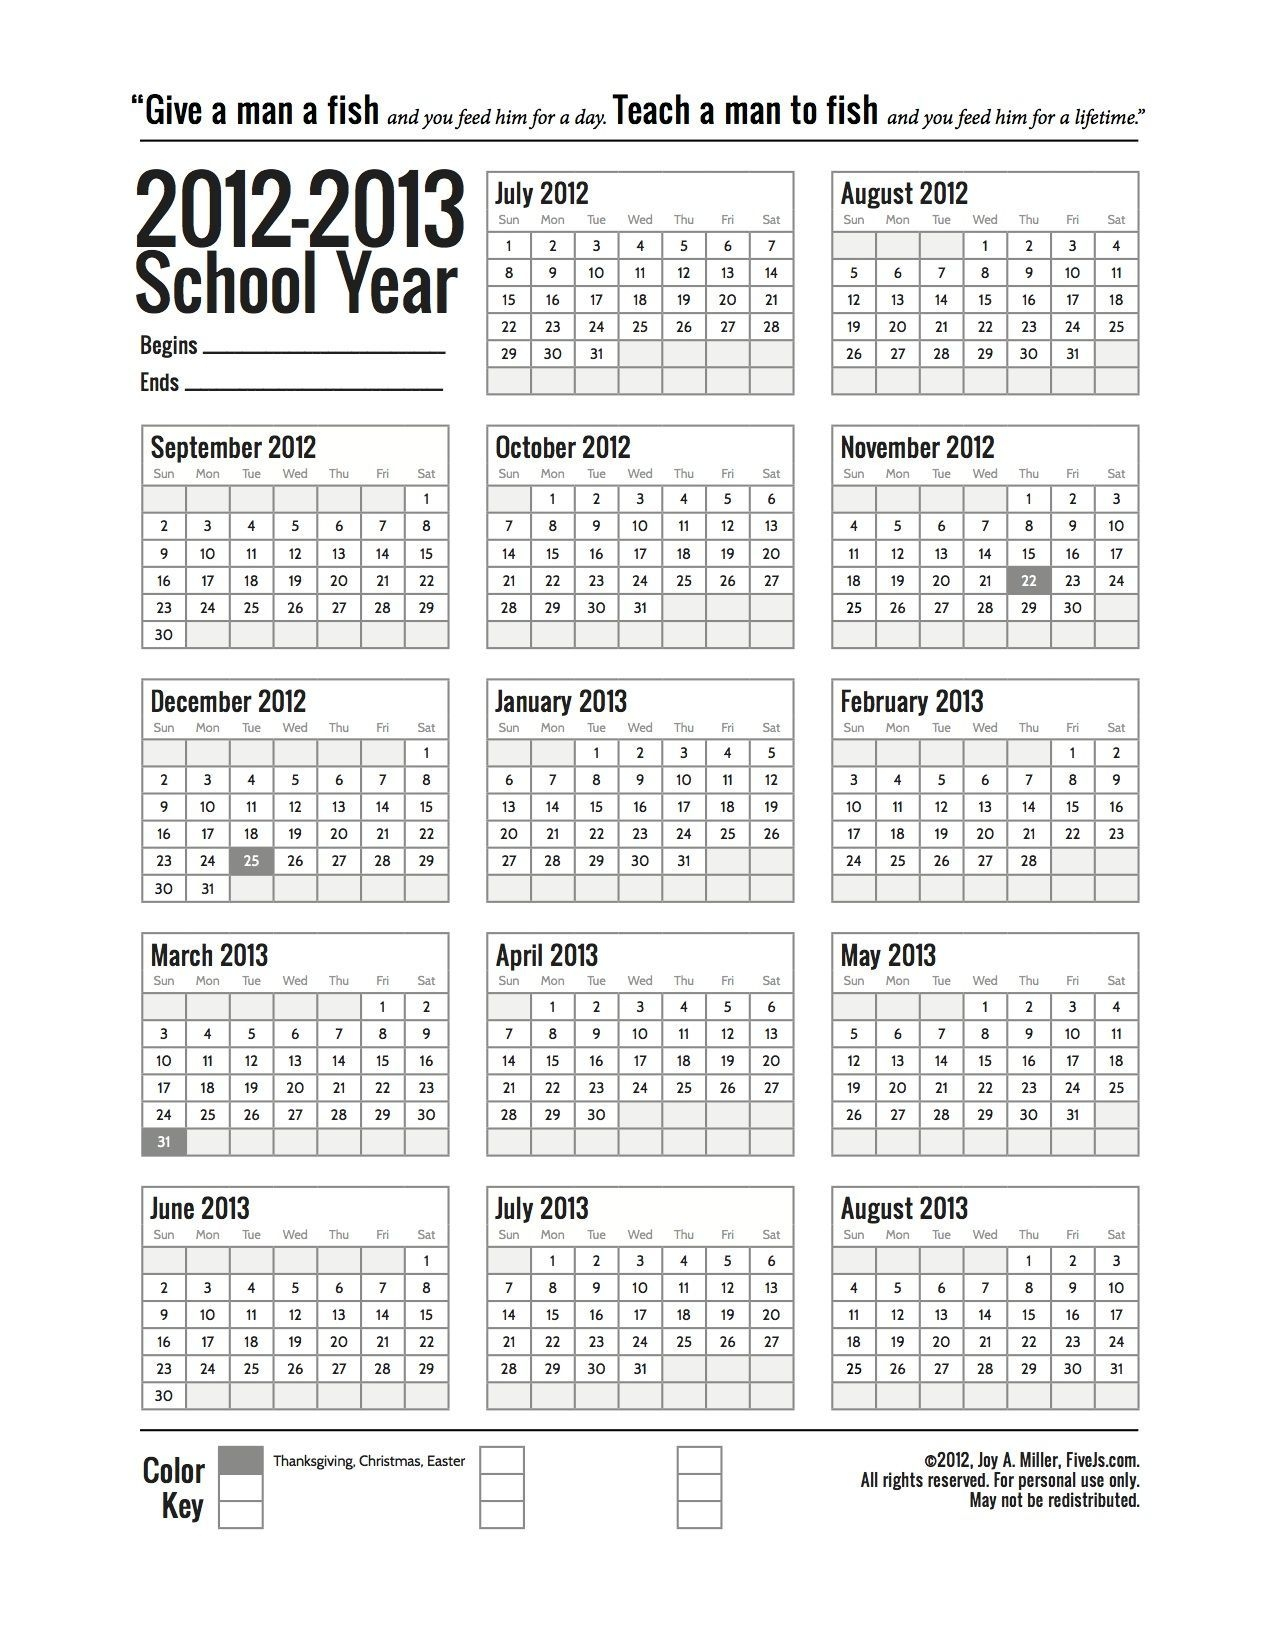 Free Printable School Calendar For 2020-2021 - Five J'S